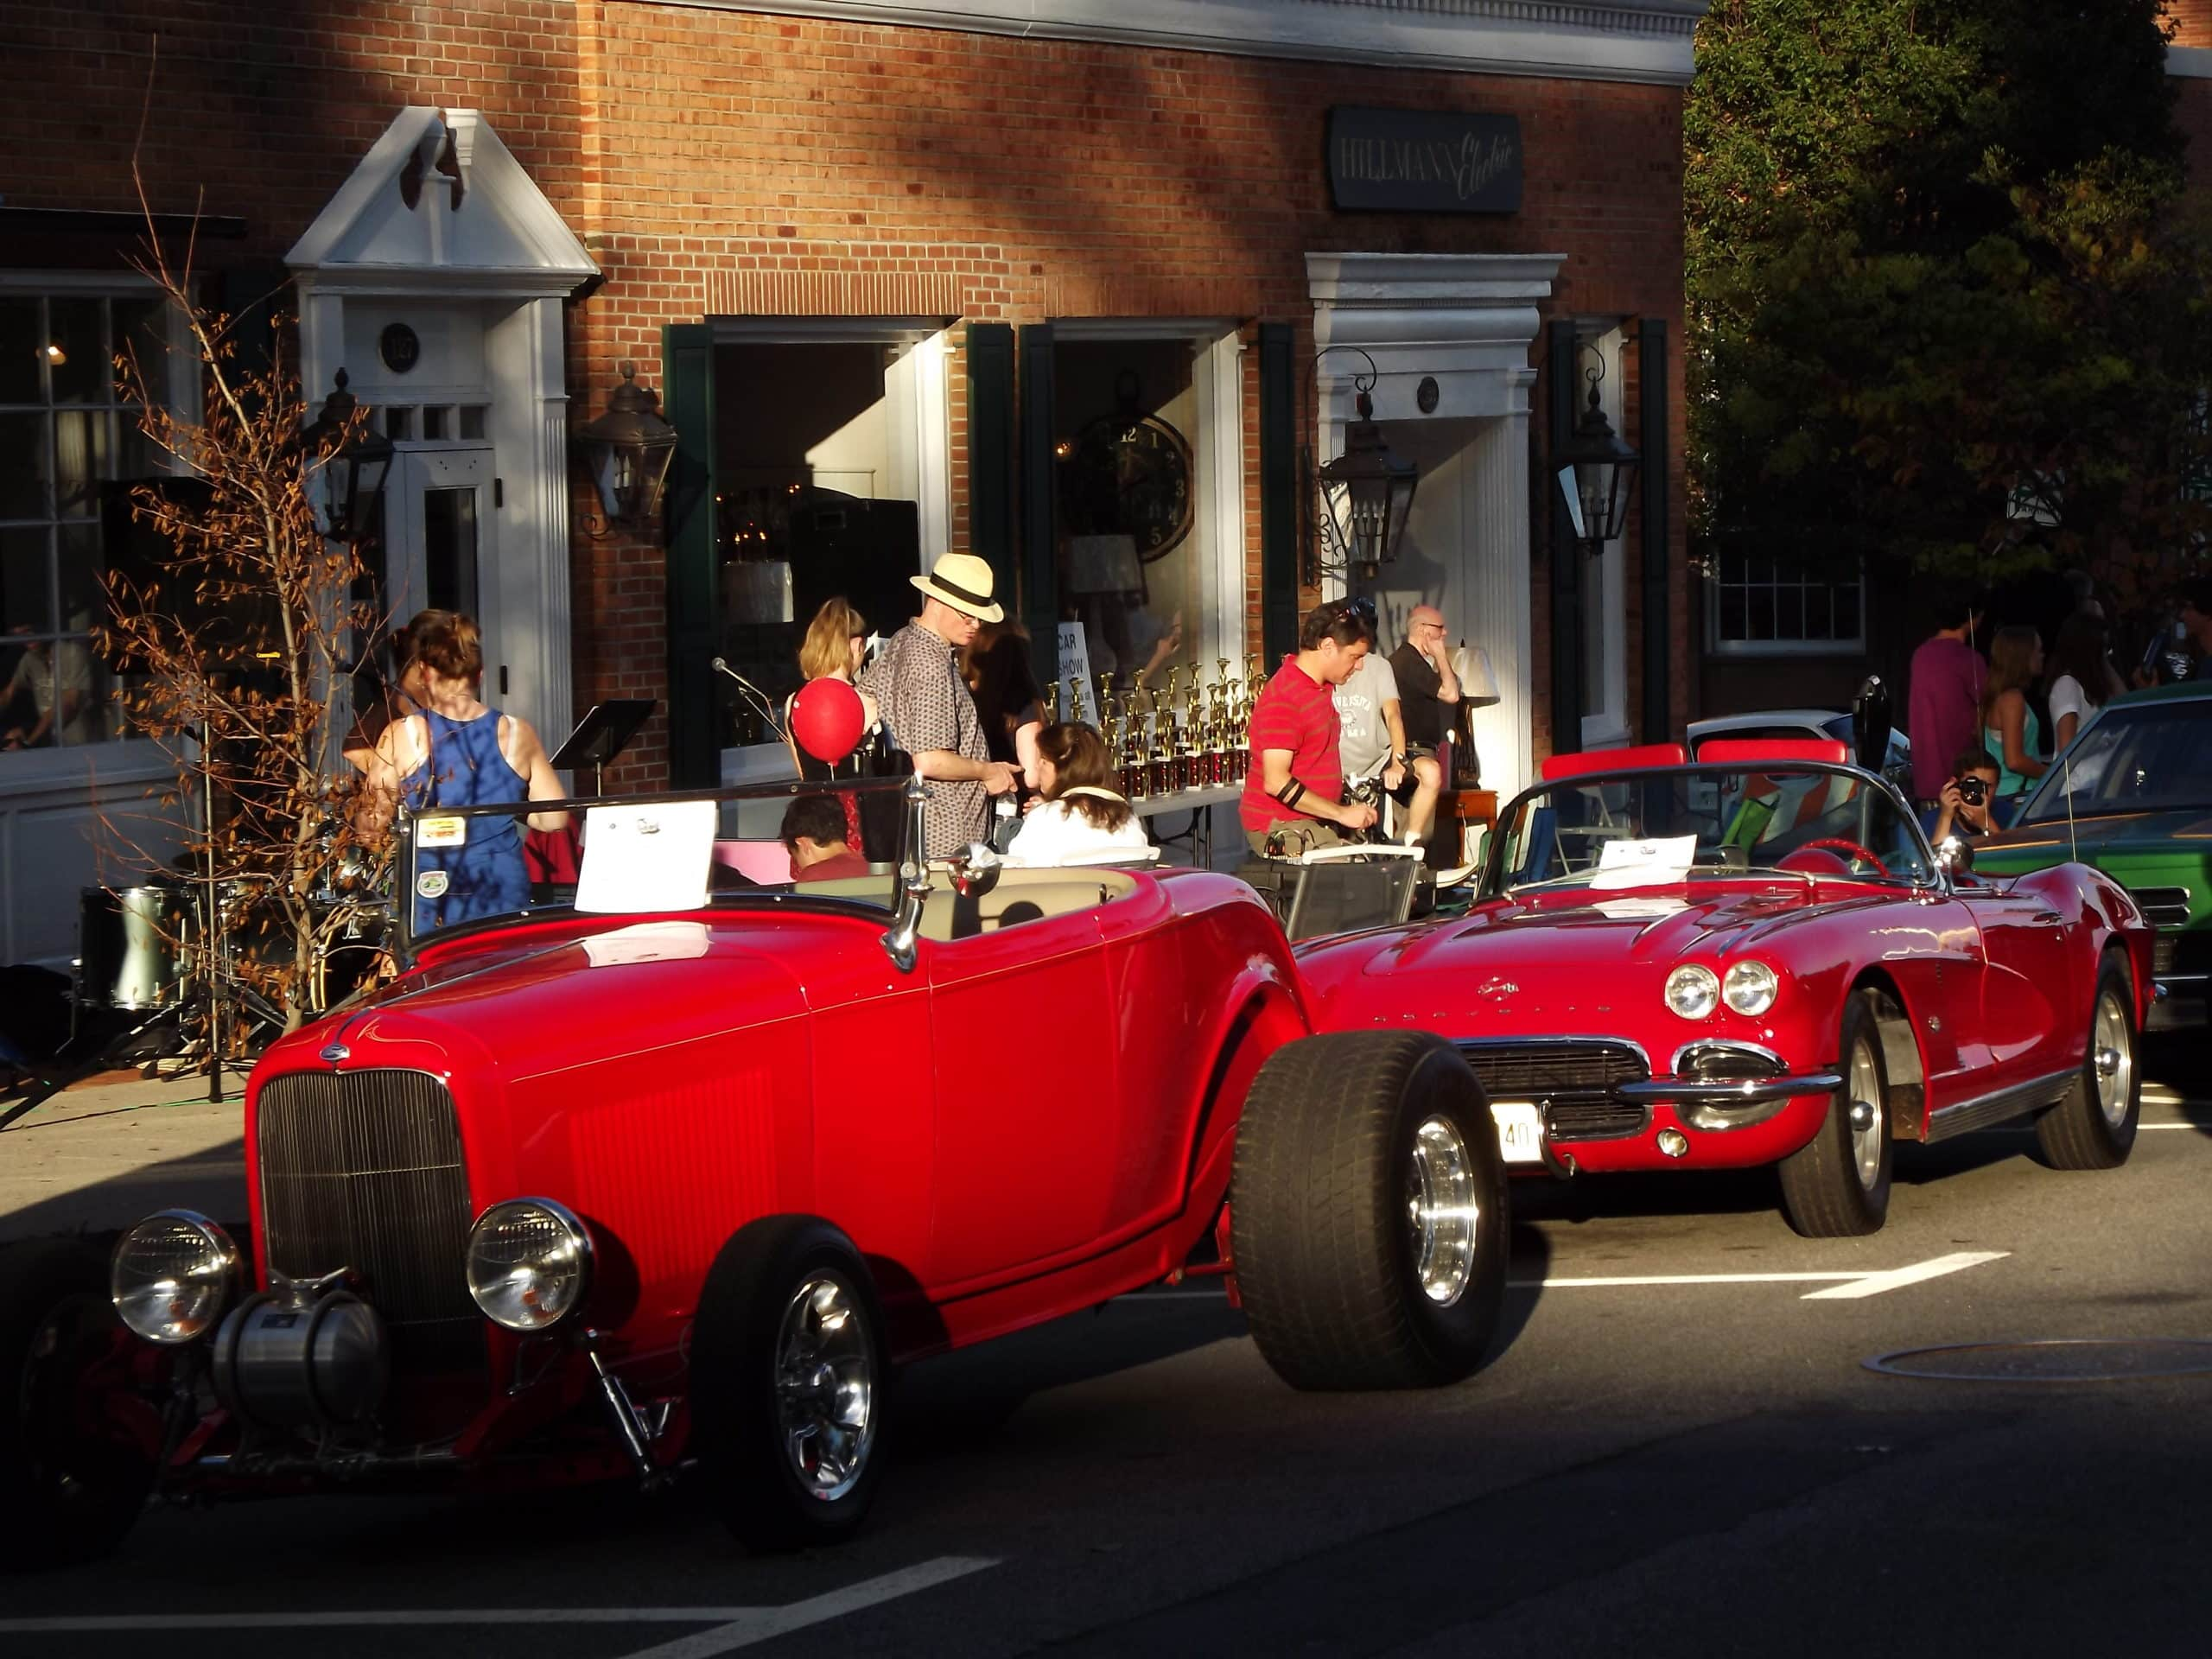 The Best Night Time Car Show In New Jersey THE RIDGEWOOD BLOG - Car shows in nj